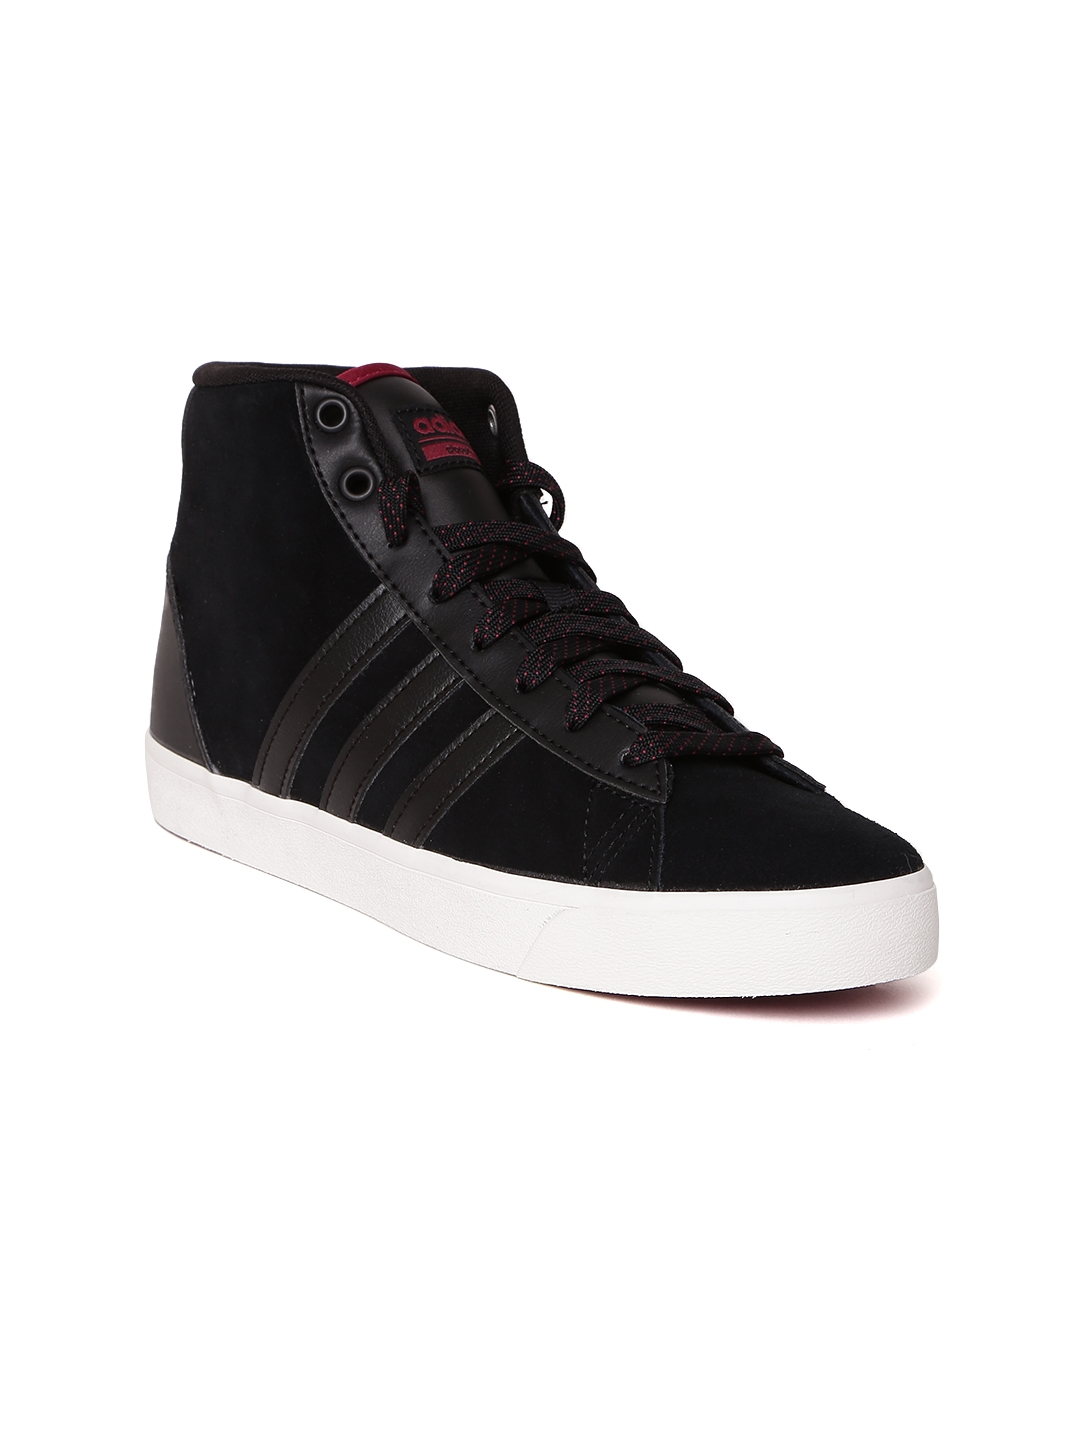 55fe0798588 Buy ADIDAS NEO Women Black CloudFoam Daily QT Leather Sneakers ...